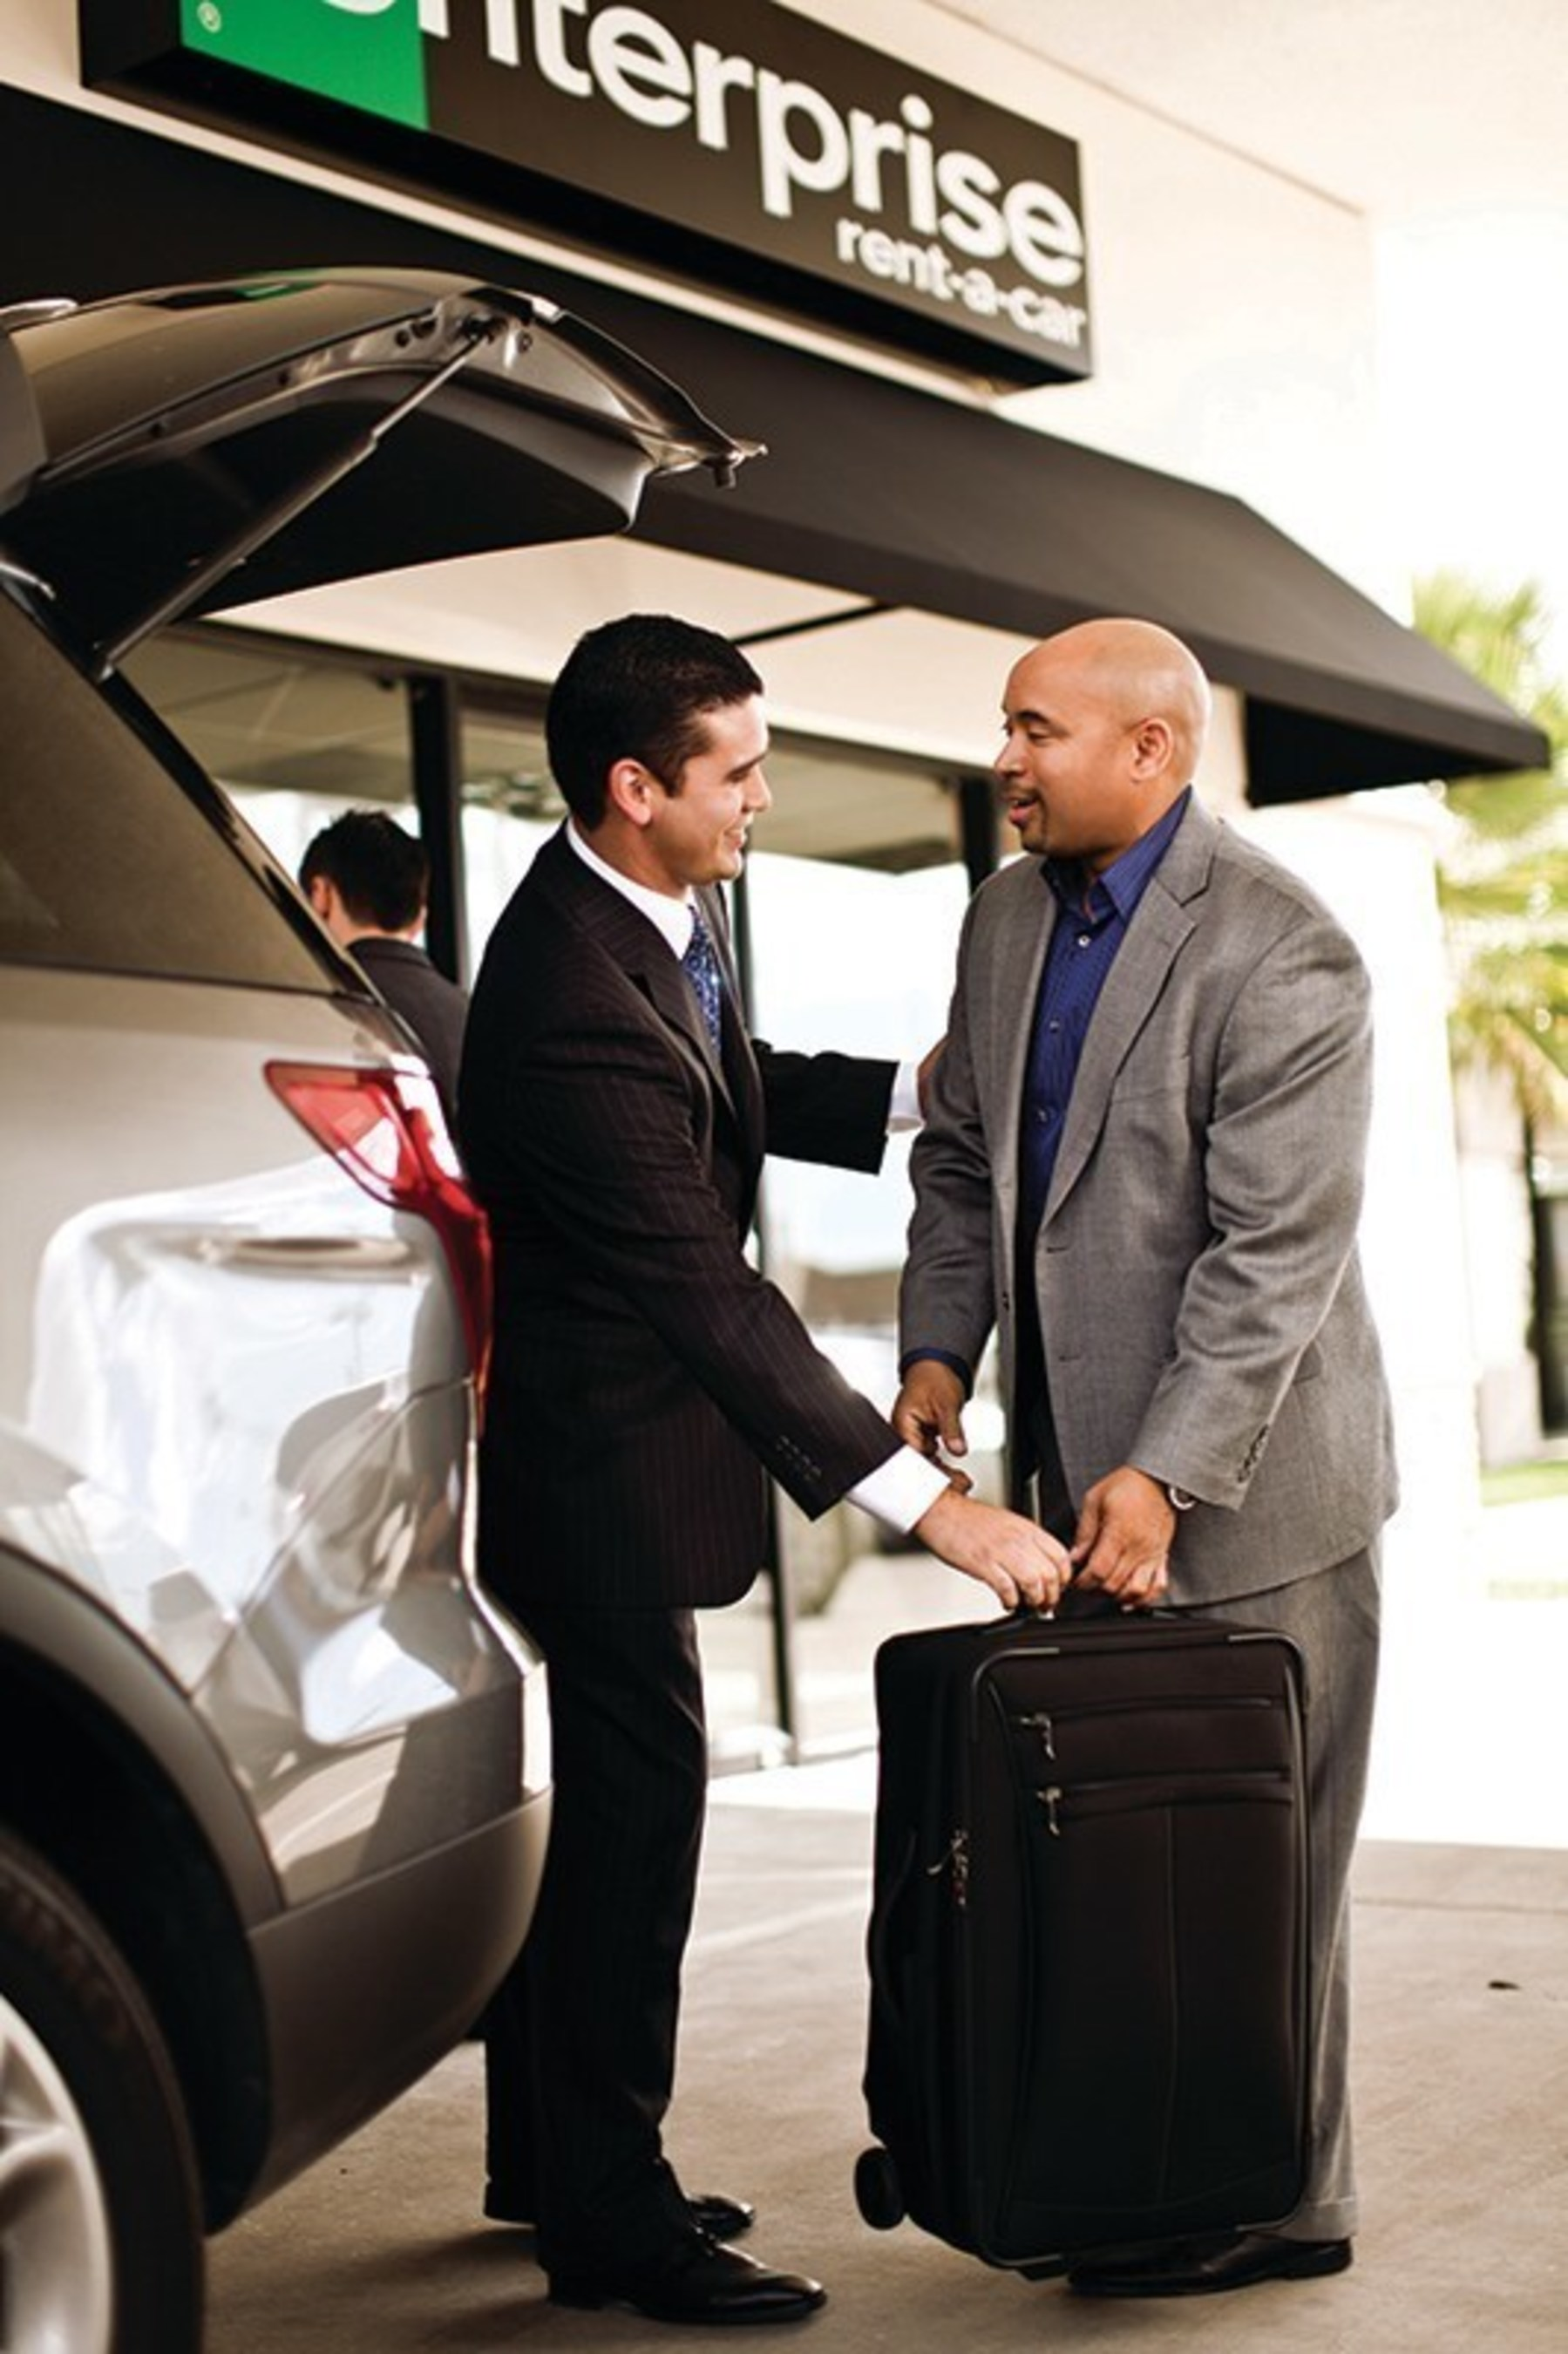 For the tenth time in twelve years, Enterprise Rent-A-Car has captured the top spot in the J.D. Power North American Rental Car Satisfaction Study.